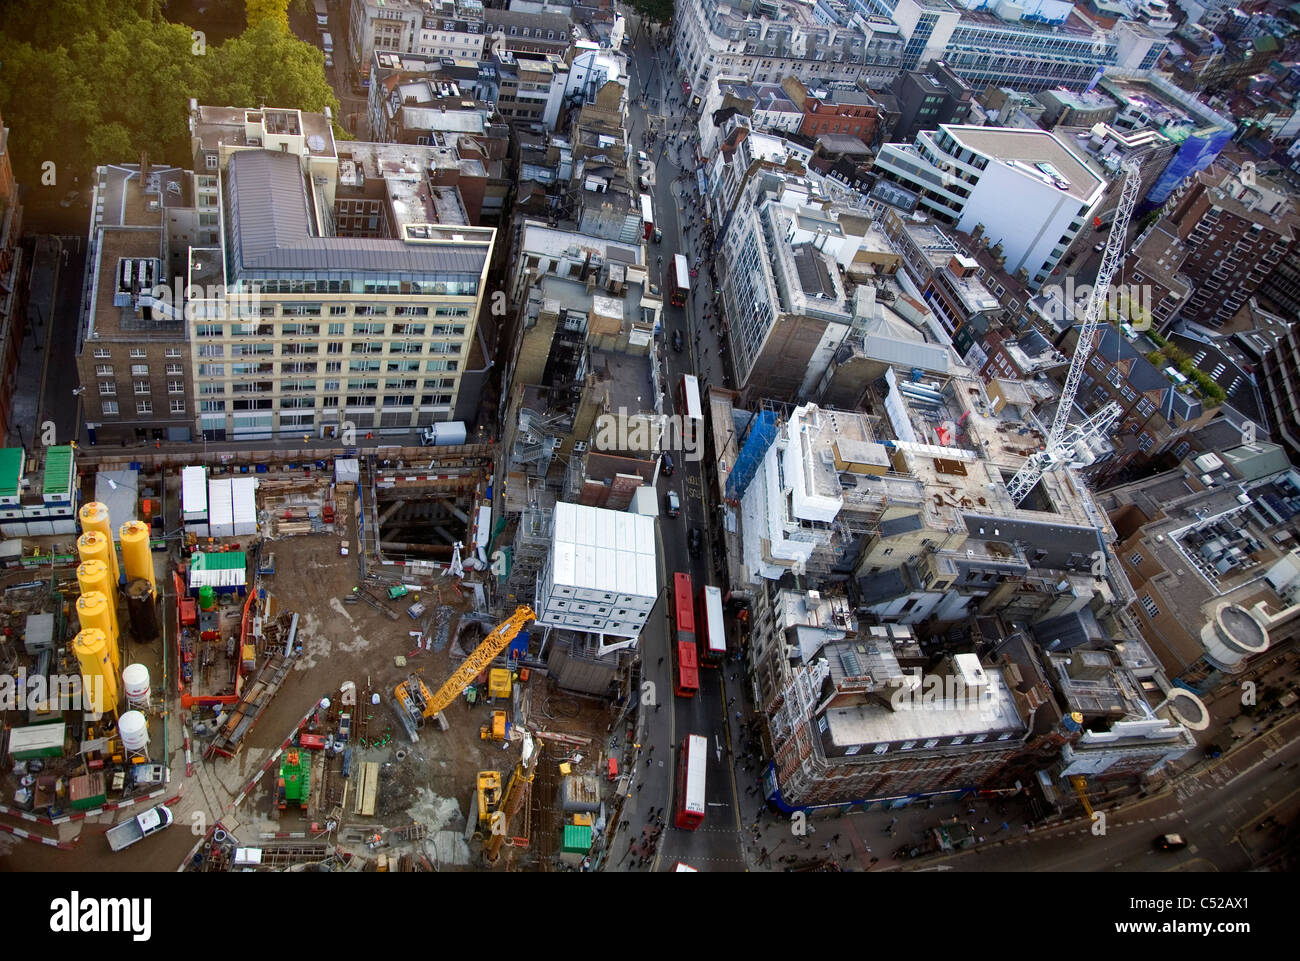 Works on the Crossrail and Underground upgrade at Tottenham Court Rd in London - Stock Image